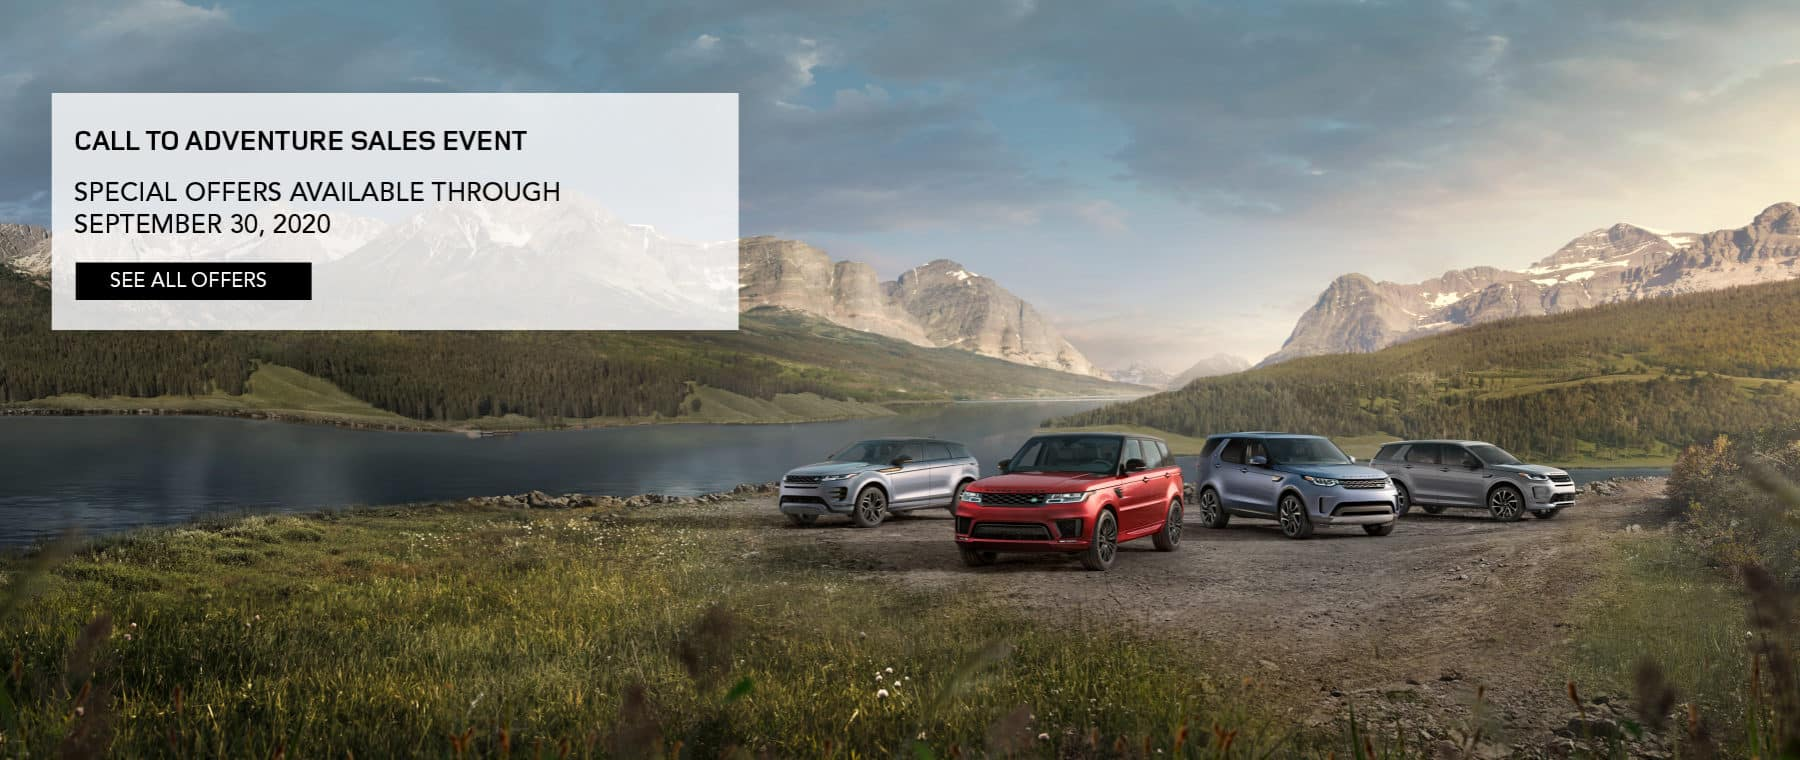 CALL TO ADVENTURE SALES EVENT. SPECIAL OFFERS AVAILABLE THROUGH SEPTEMBER 30, 2020. SEE ALL OFFERS. IMAGE FEATURES LAND ROVER FLEET.